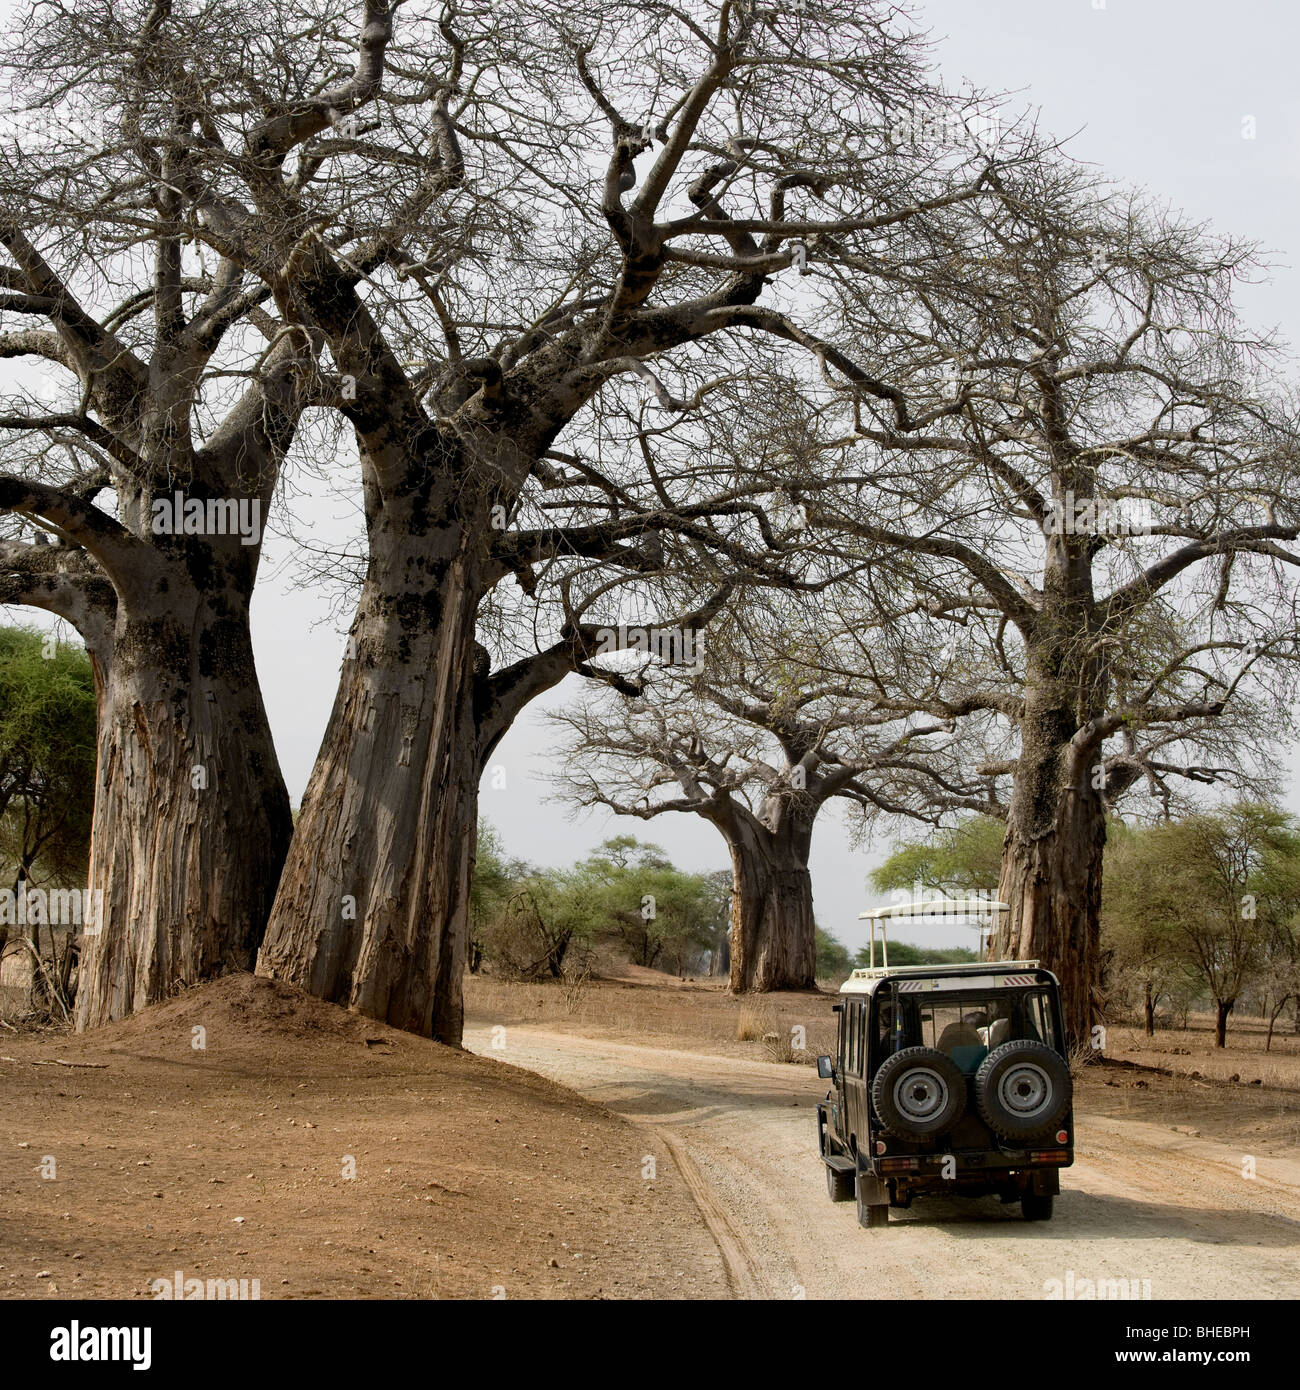 Jeep on dirt road in Africa - Stock Image